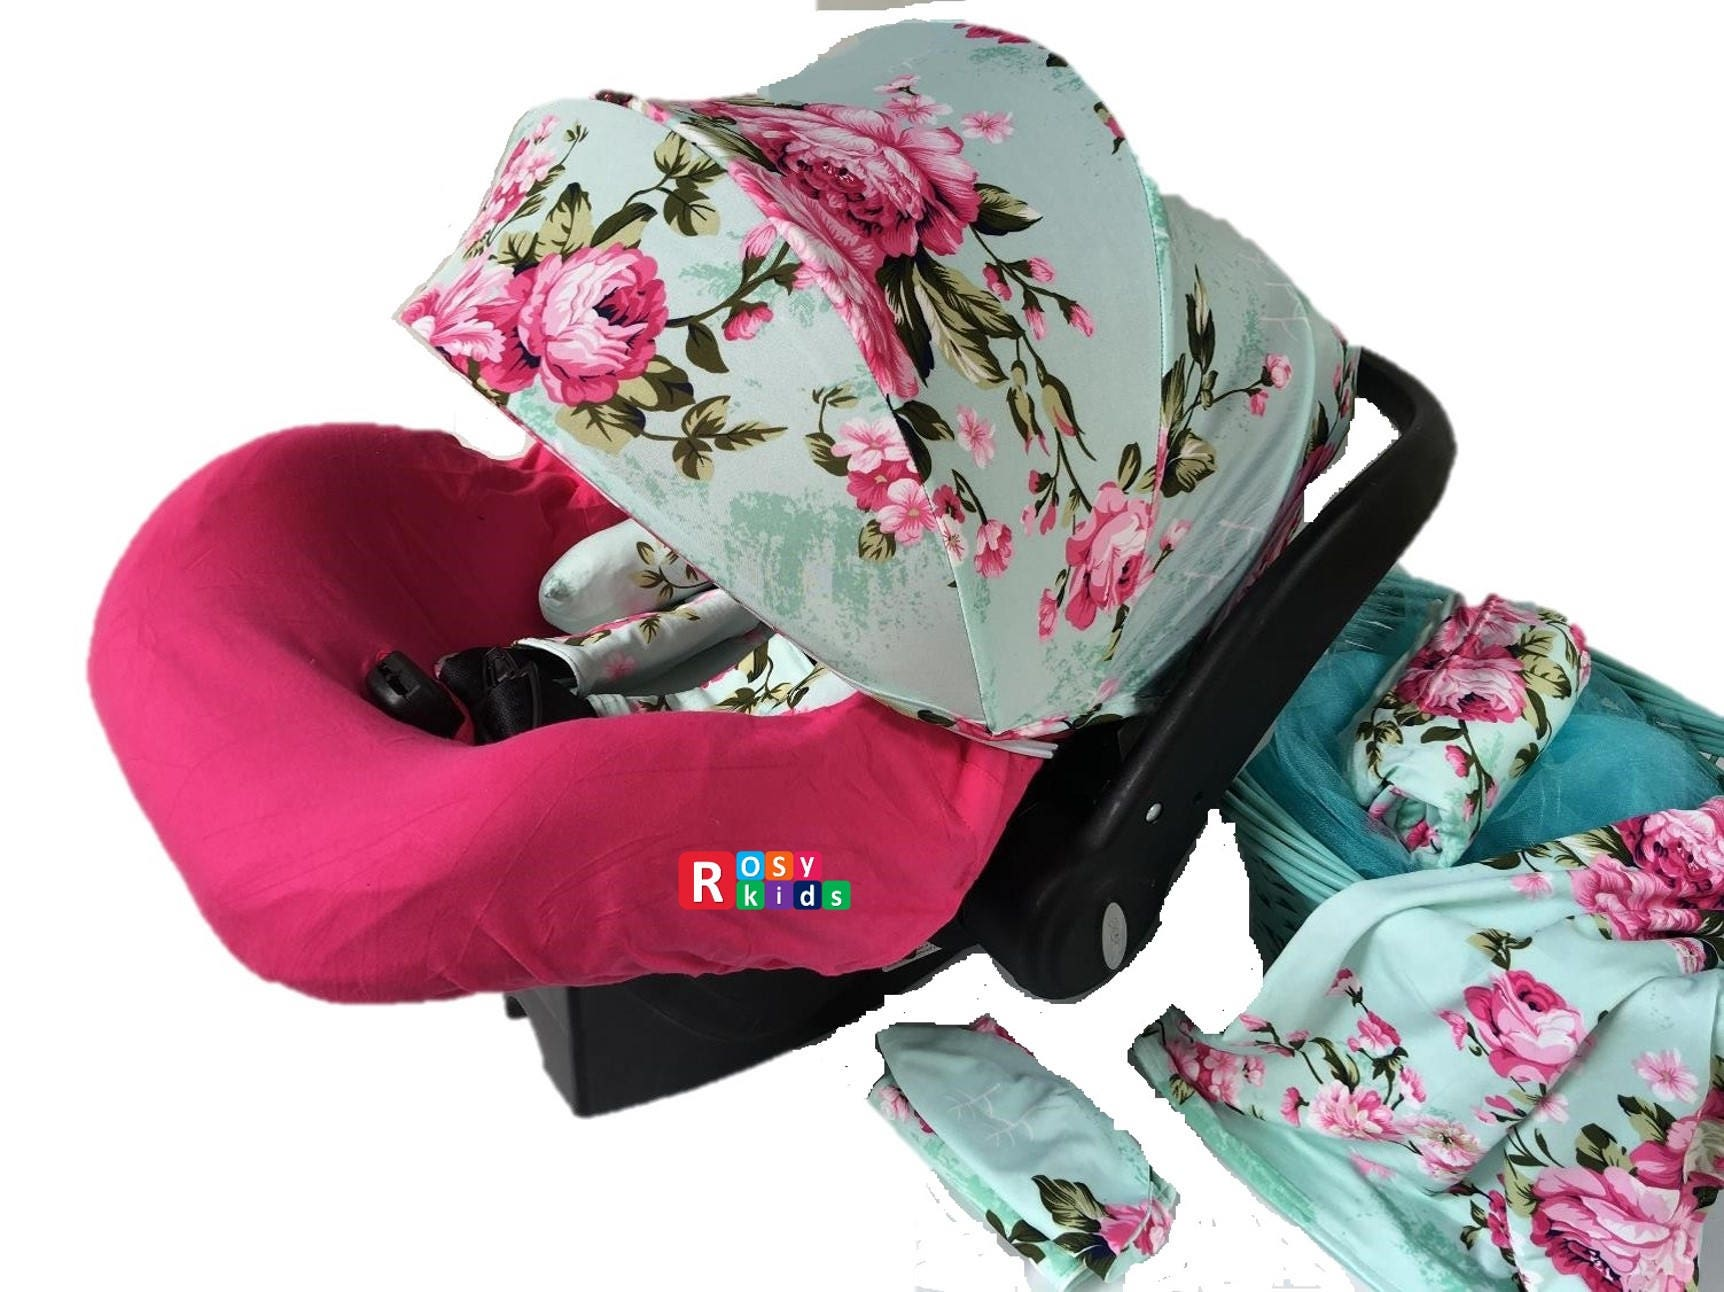 9pc Baby Boy Baby Girl Ultimate Set Of Infant Car Seat Cover